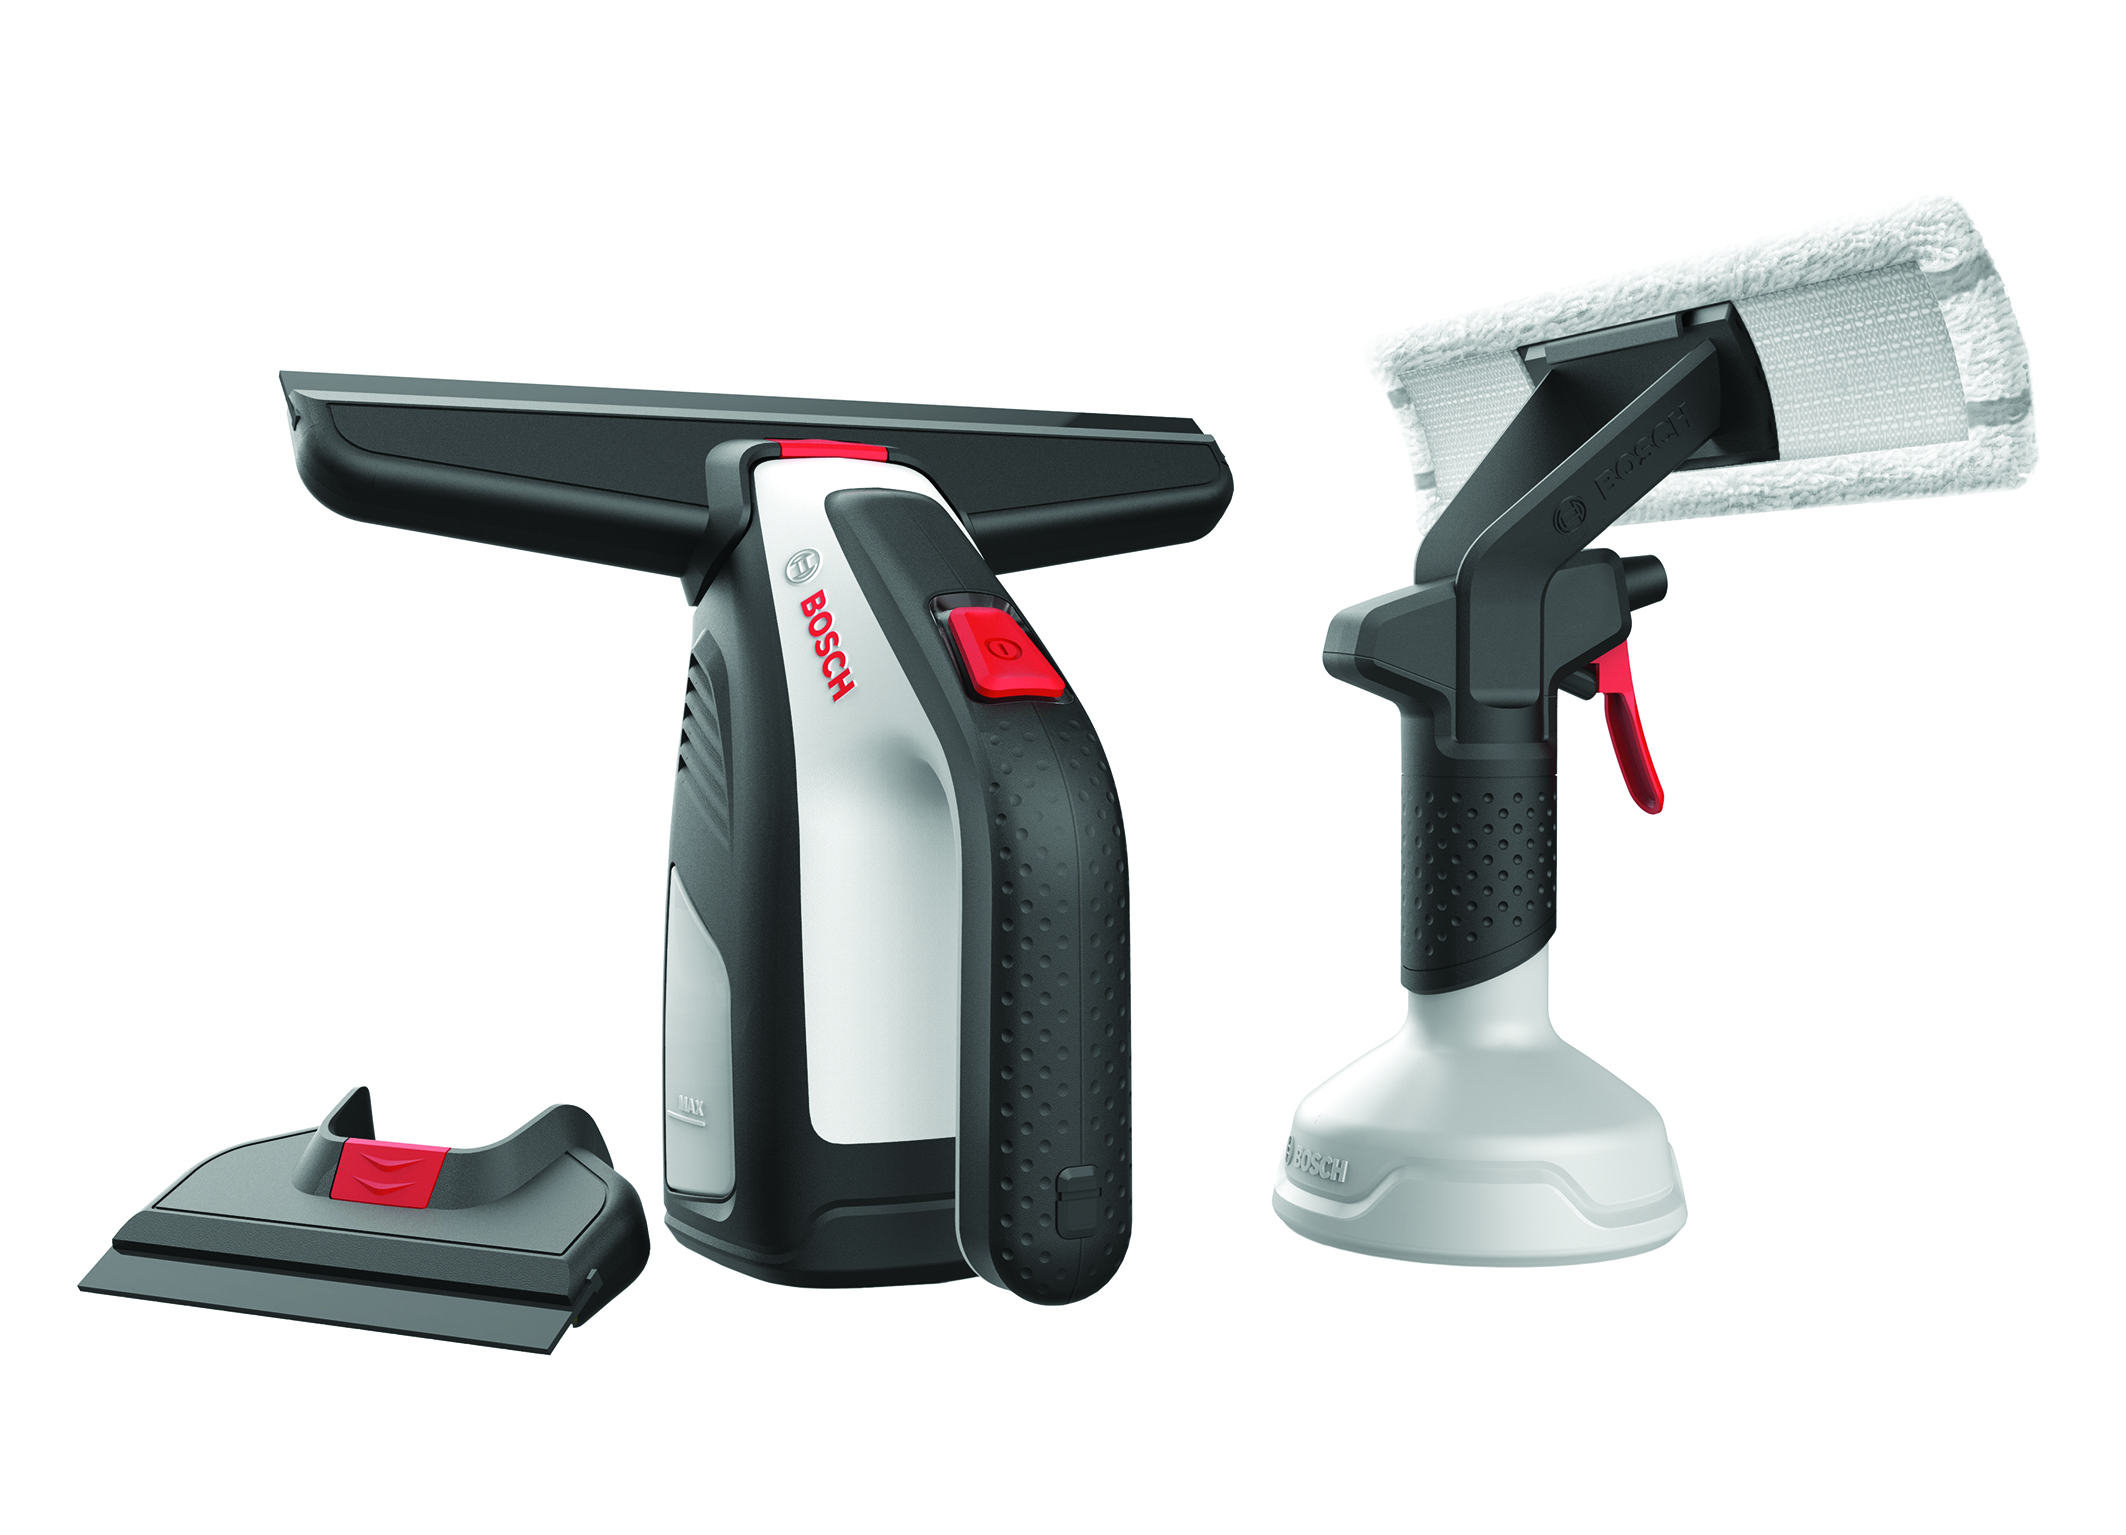 Say goodbye to buckets and newspaper: GlassVac – first cordless window vacuum from Bosch